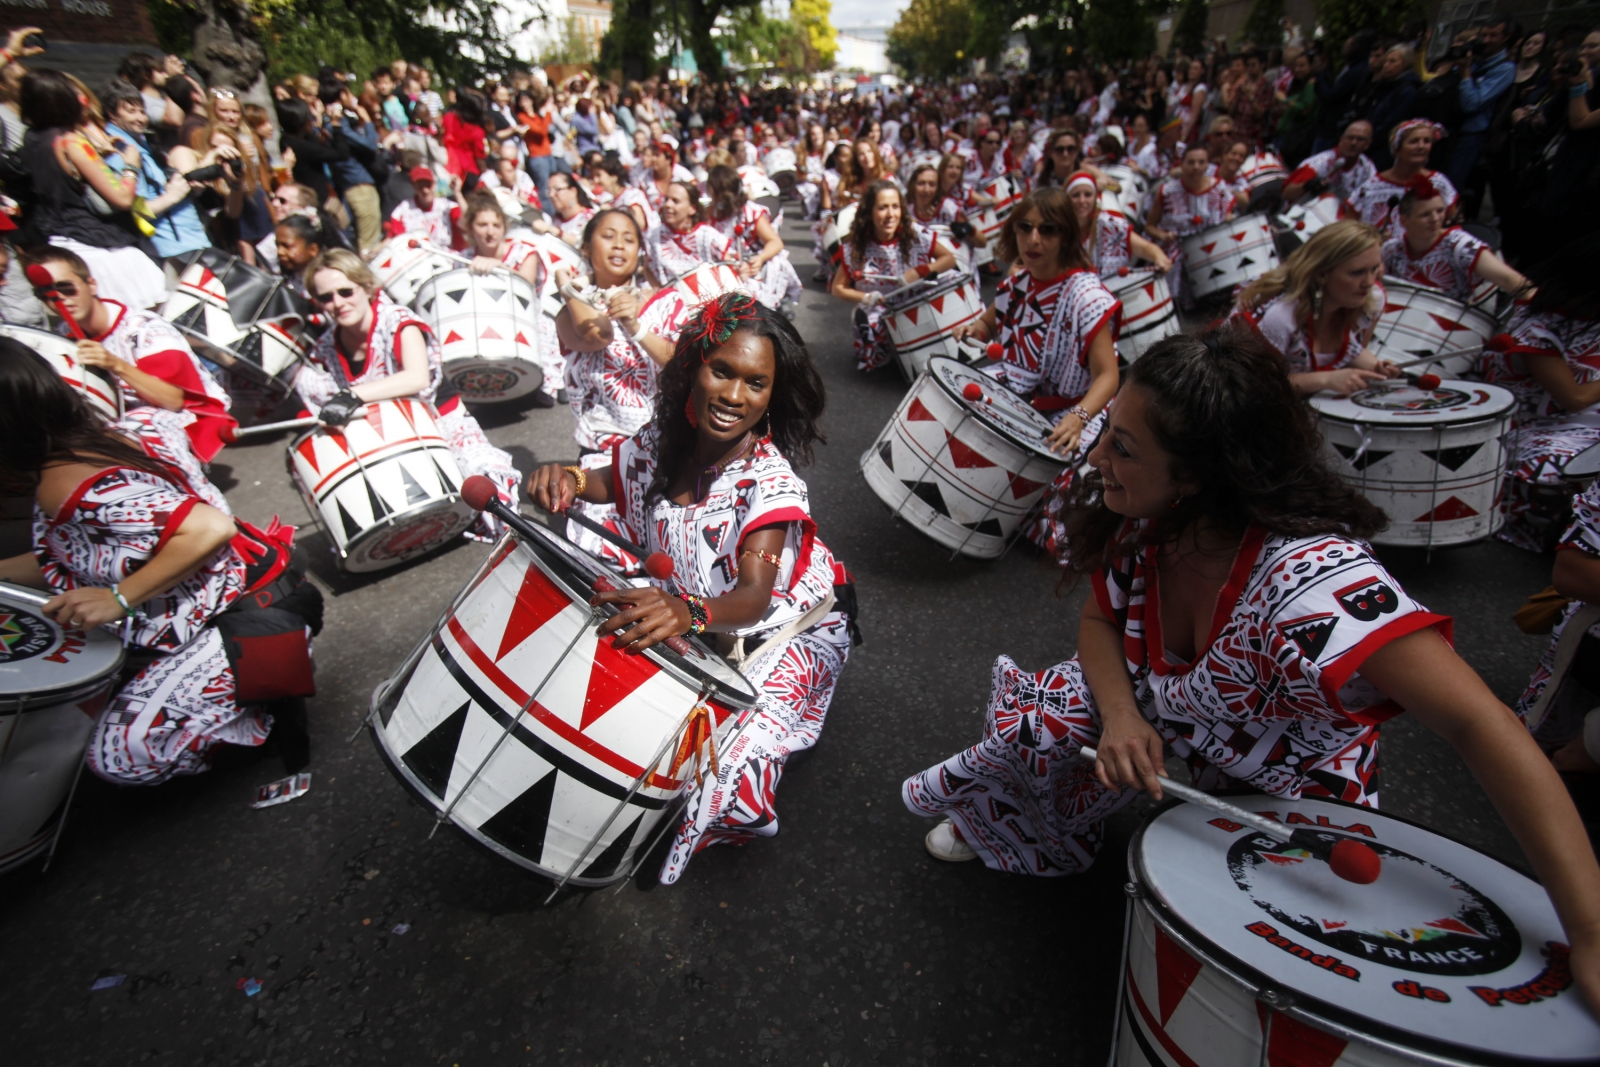 Notting Hill Carnival gets underway